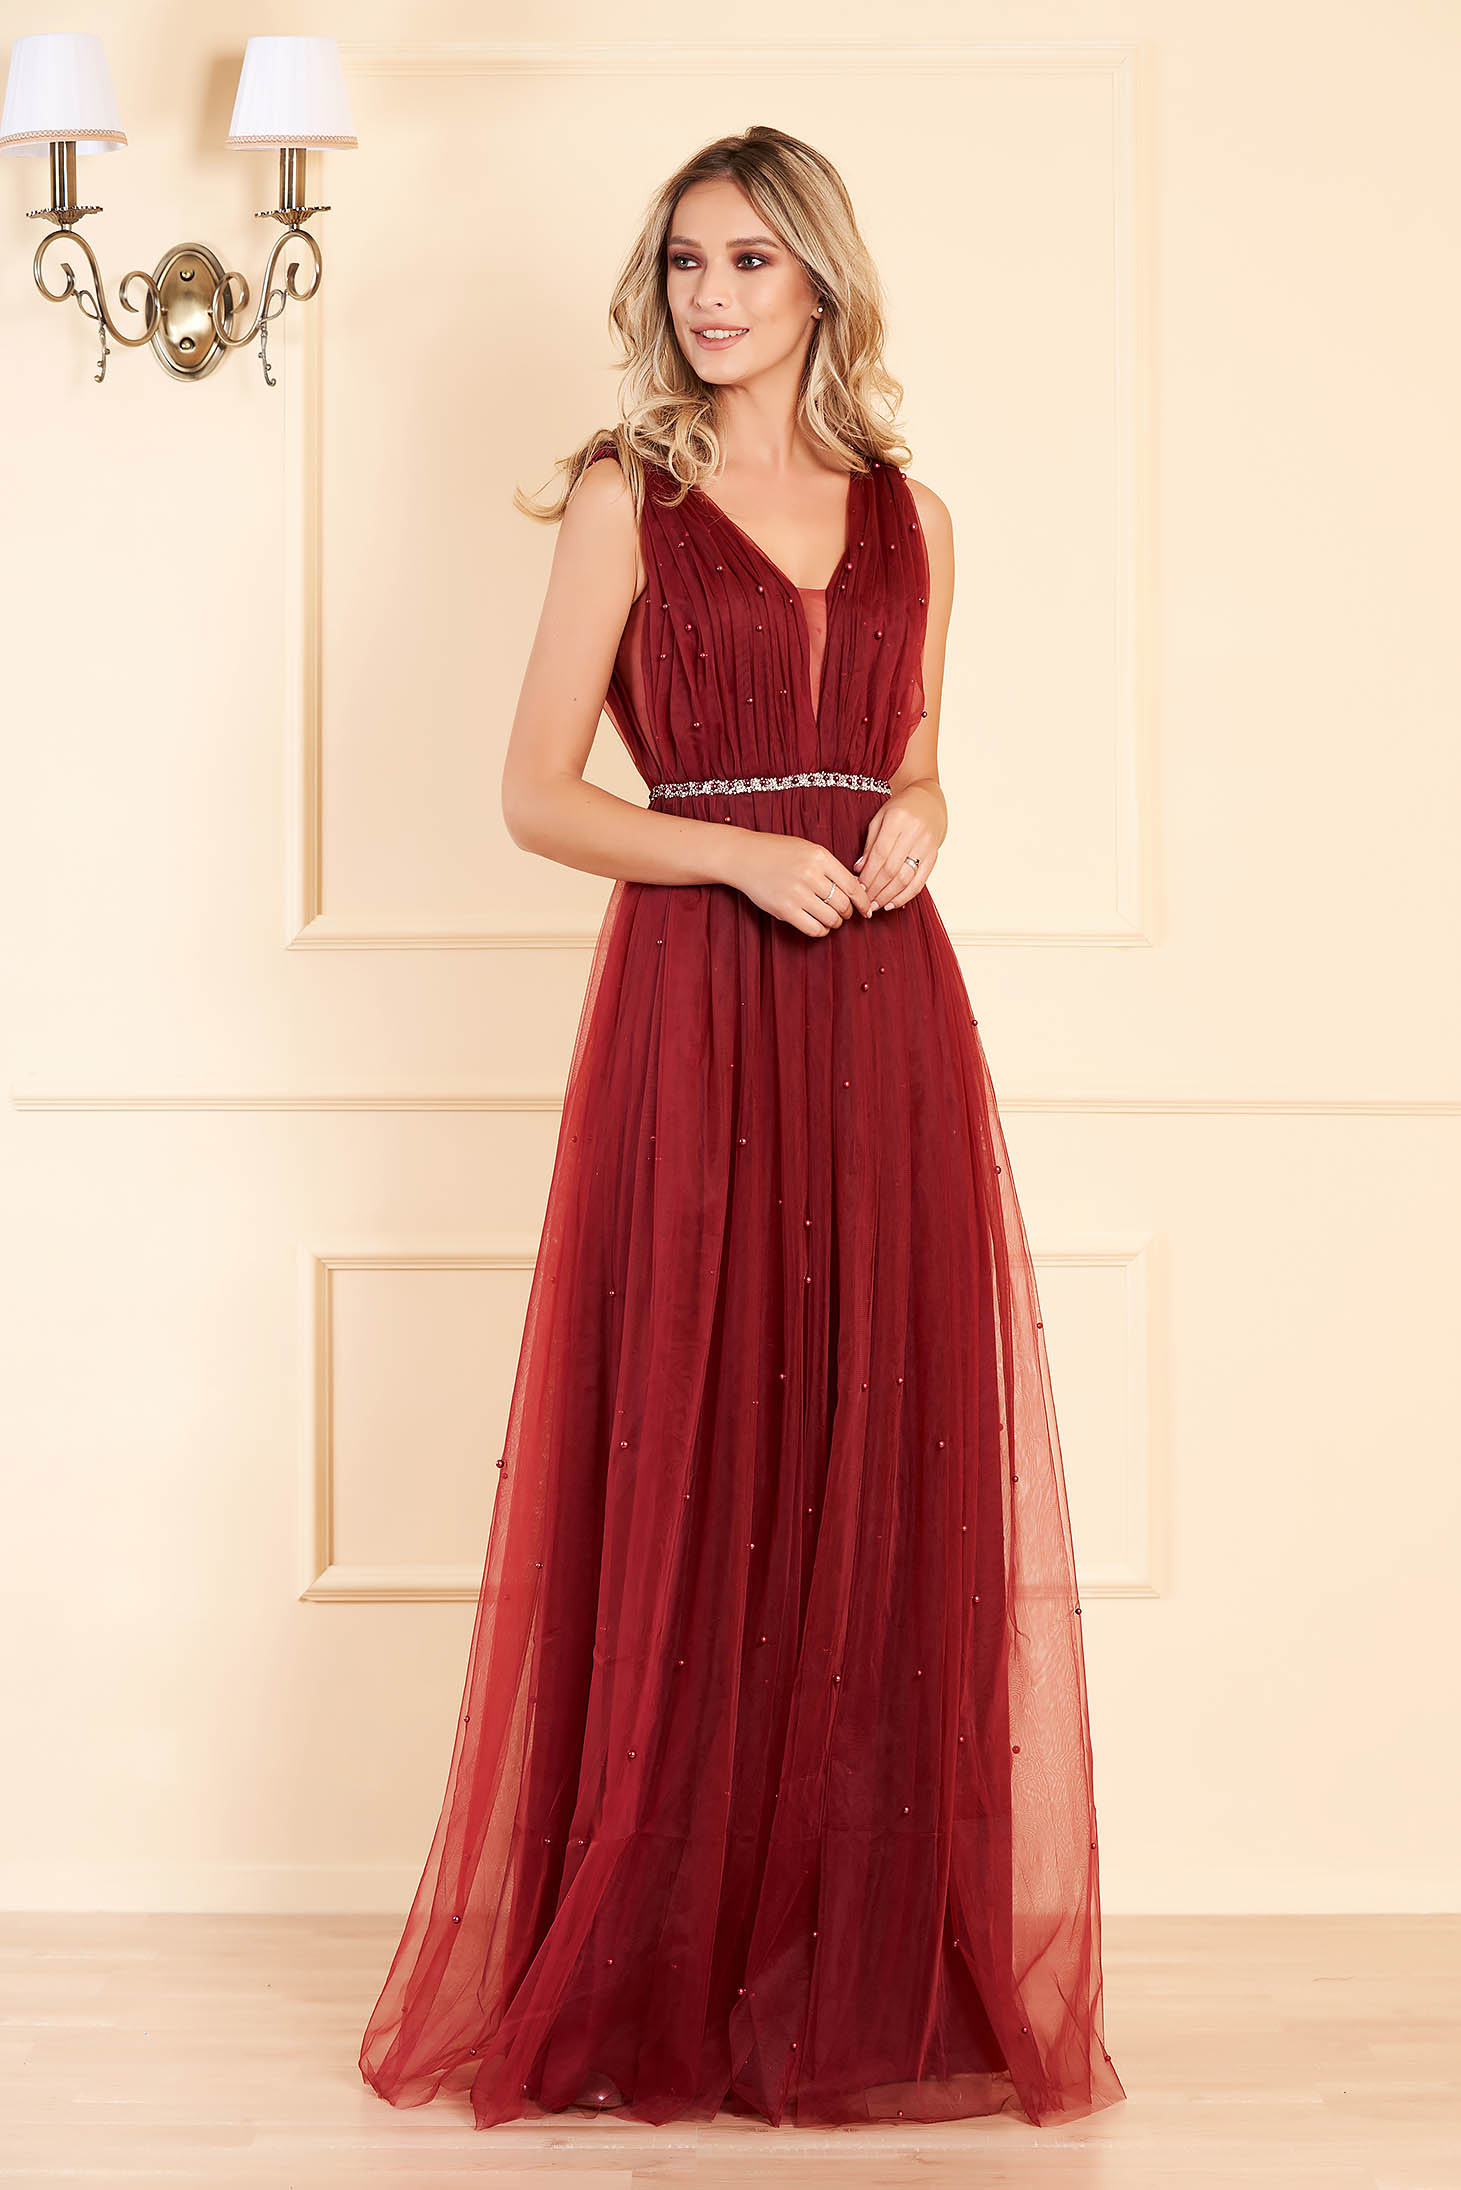 Burgundy long occasional cloche dress from tulle with pearls with push-up cups sleeveless